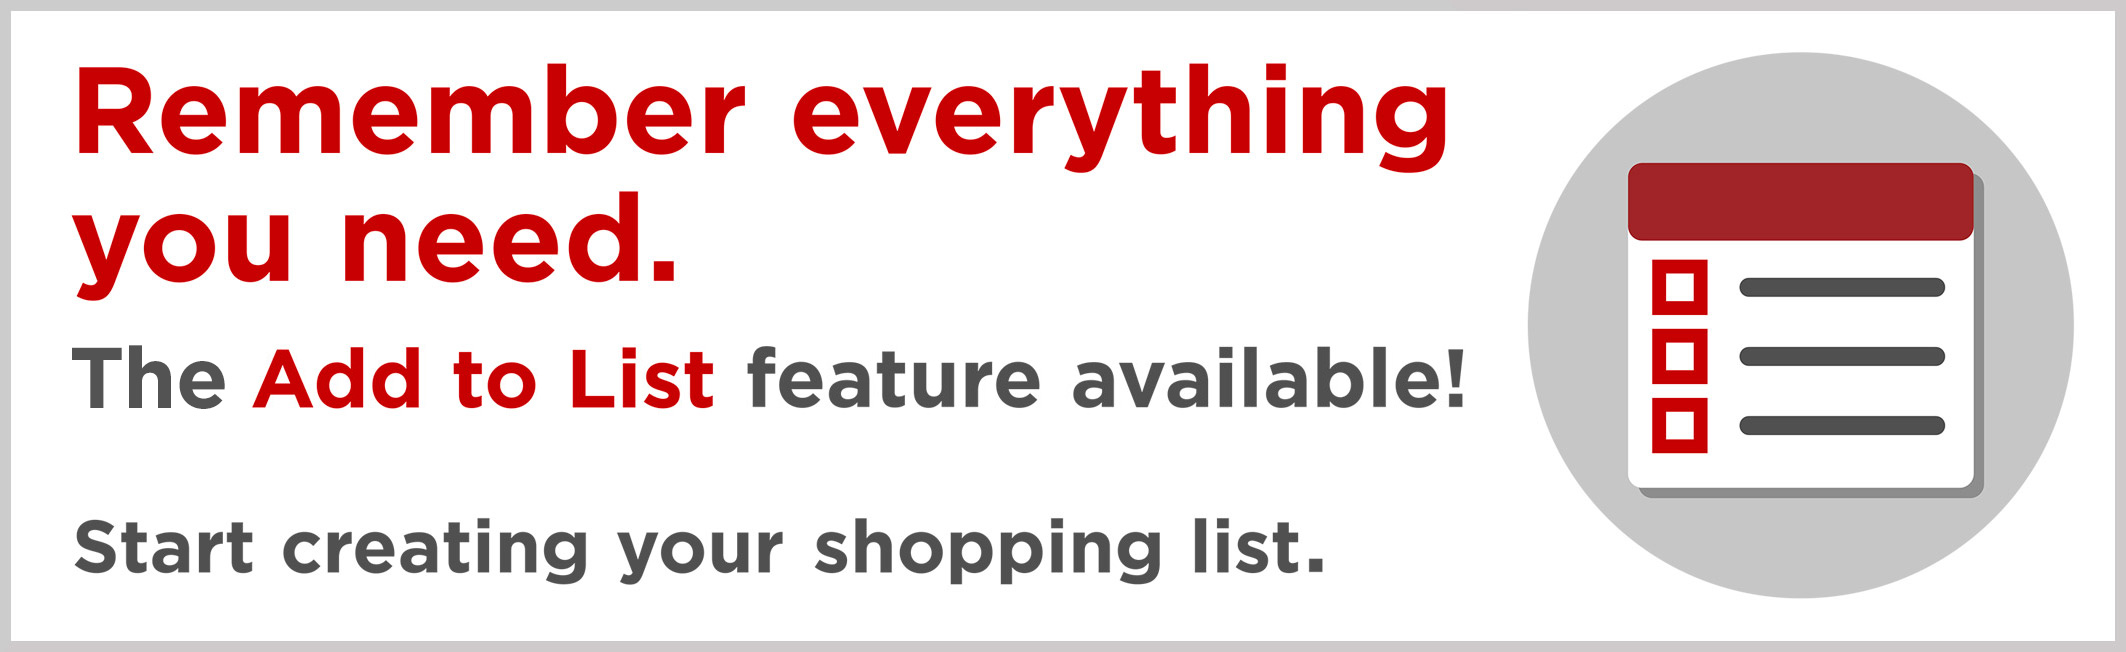 Remember everything you need. New Add to List feature available! Start creating your shopping list.